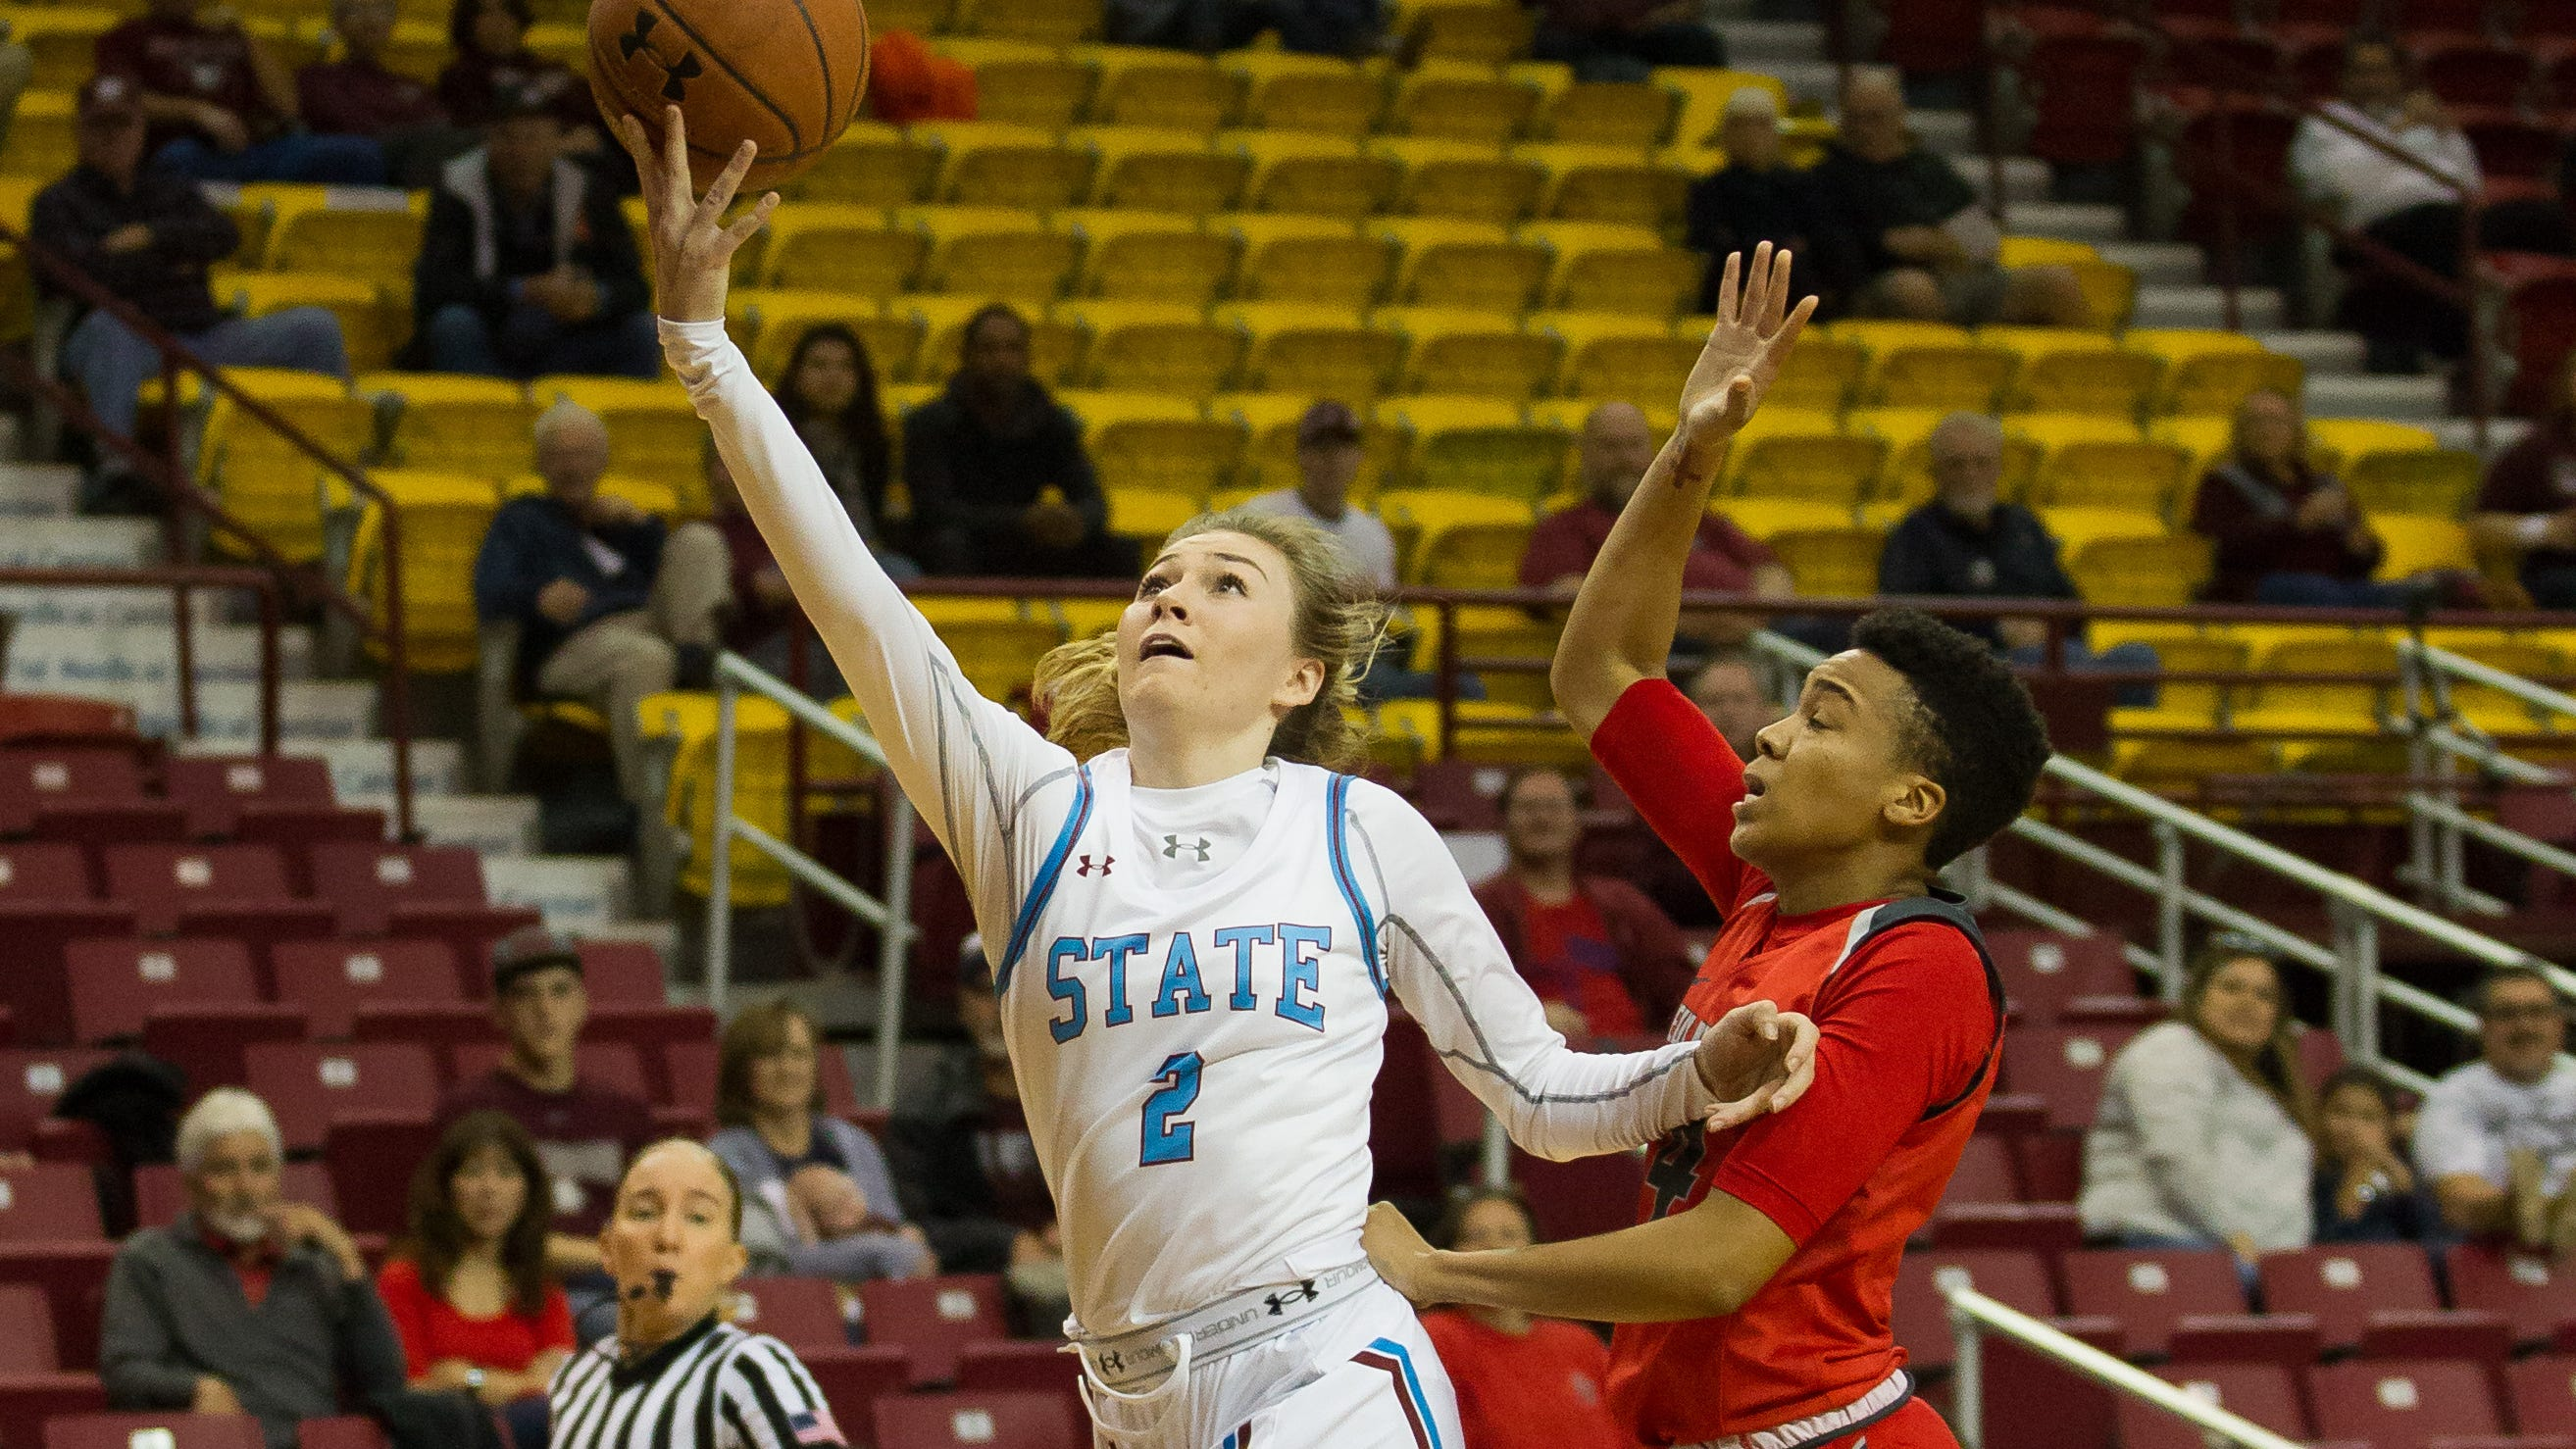 New Mexico State's Brooke Salas drives in for a lay up against New Mexico on Saturday at the Pan American Center.